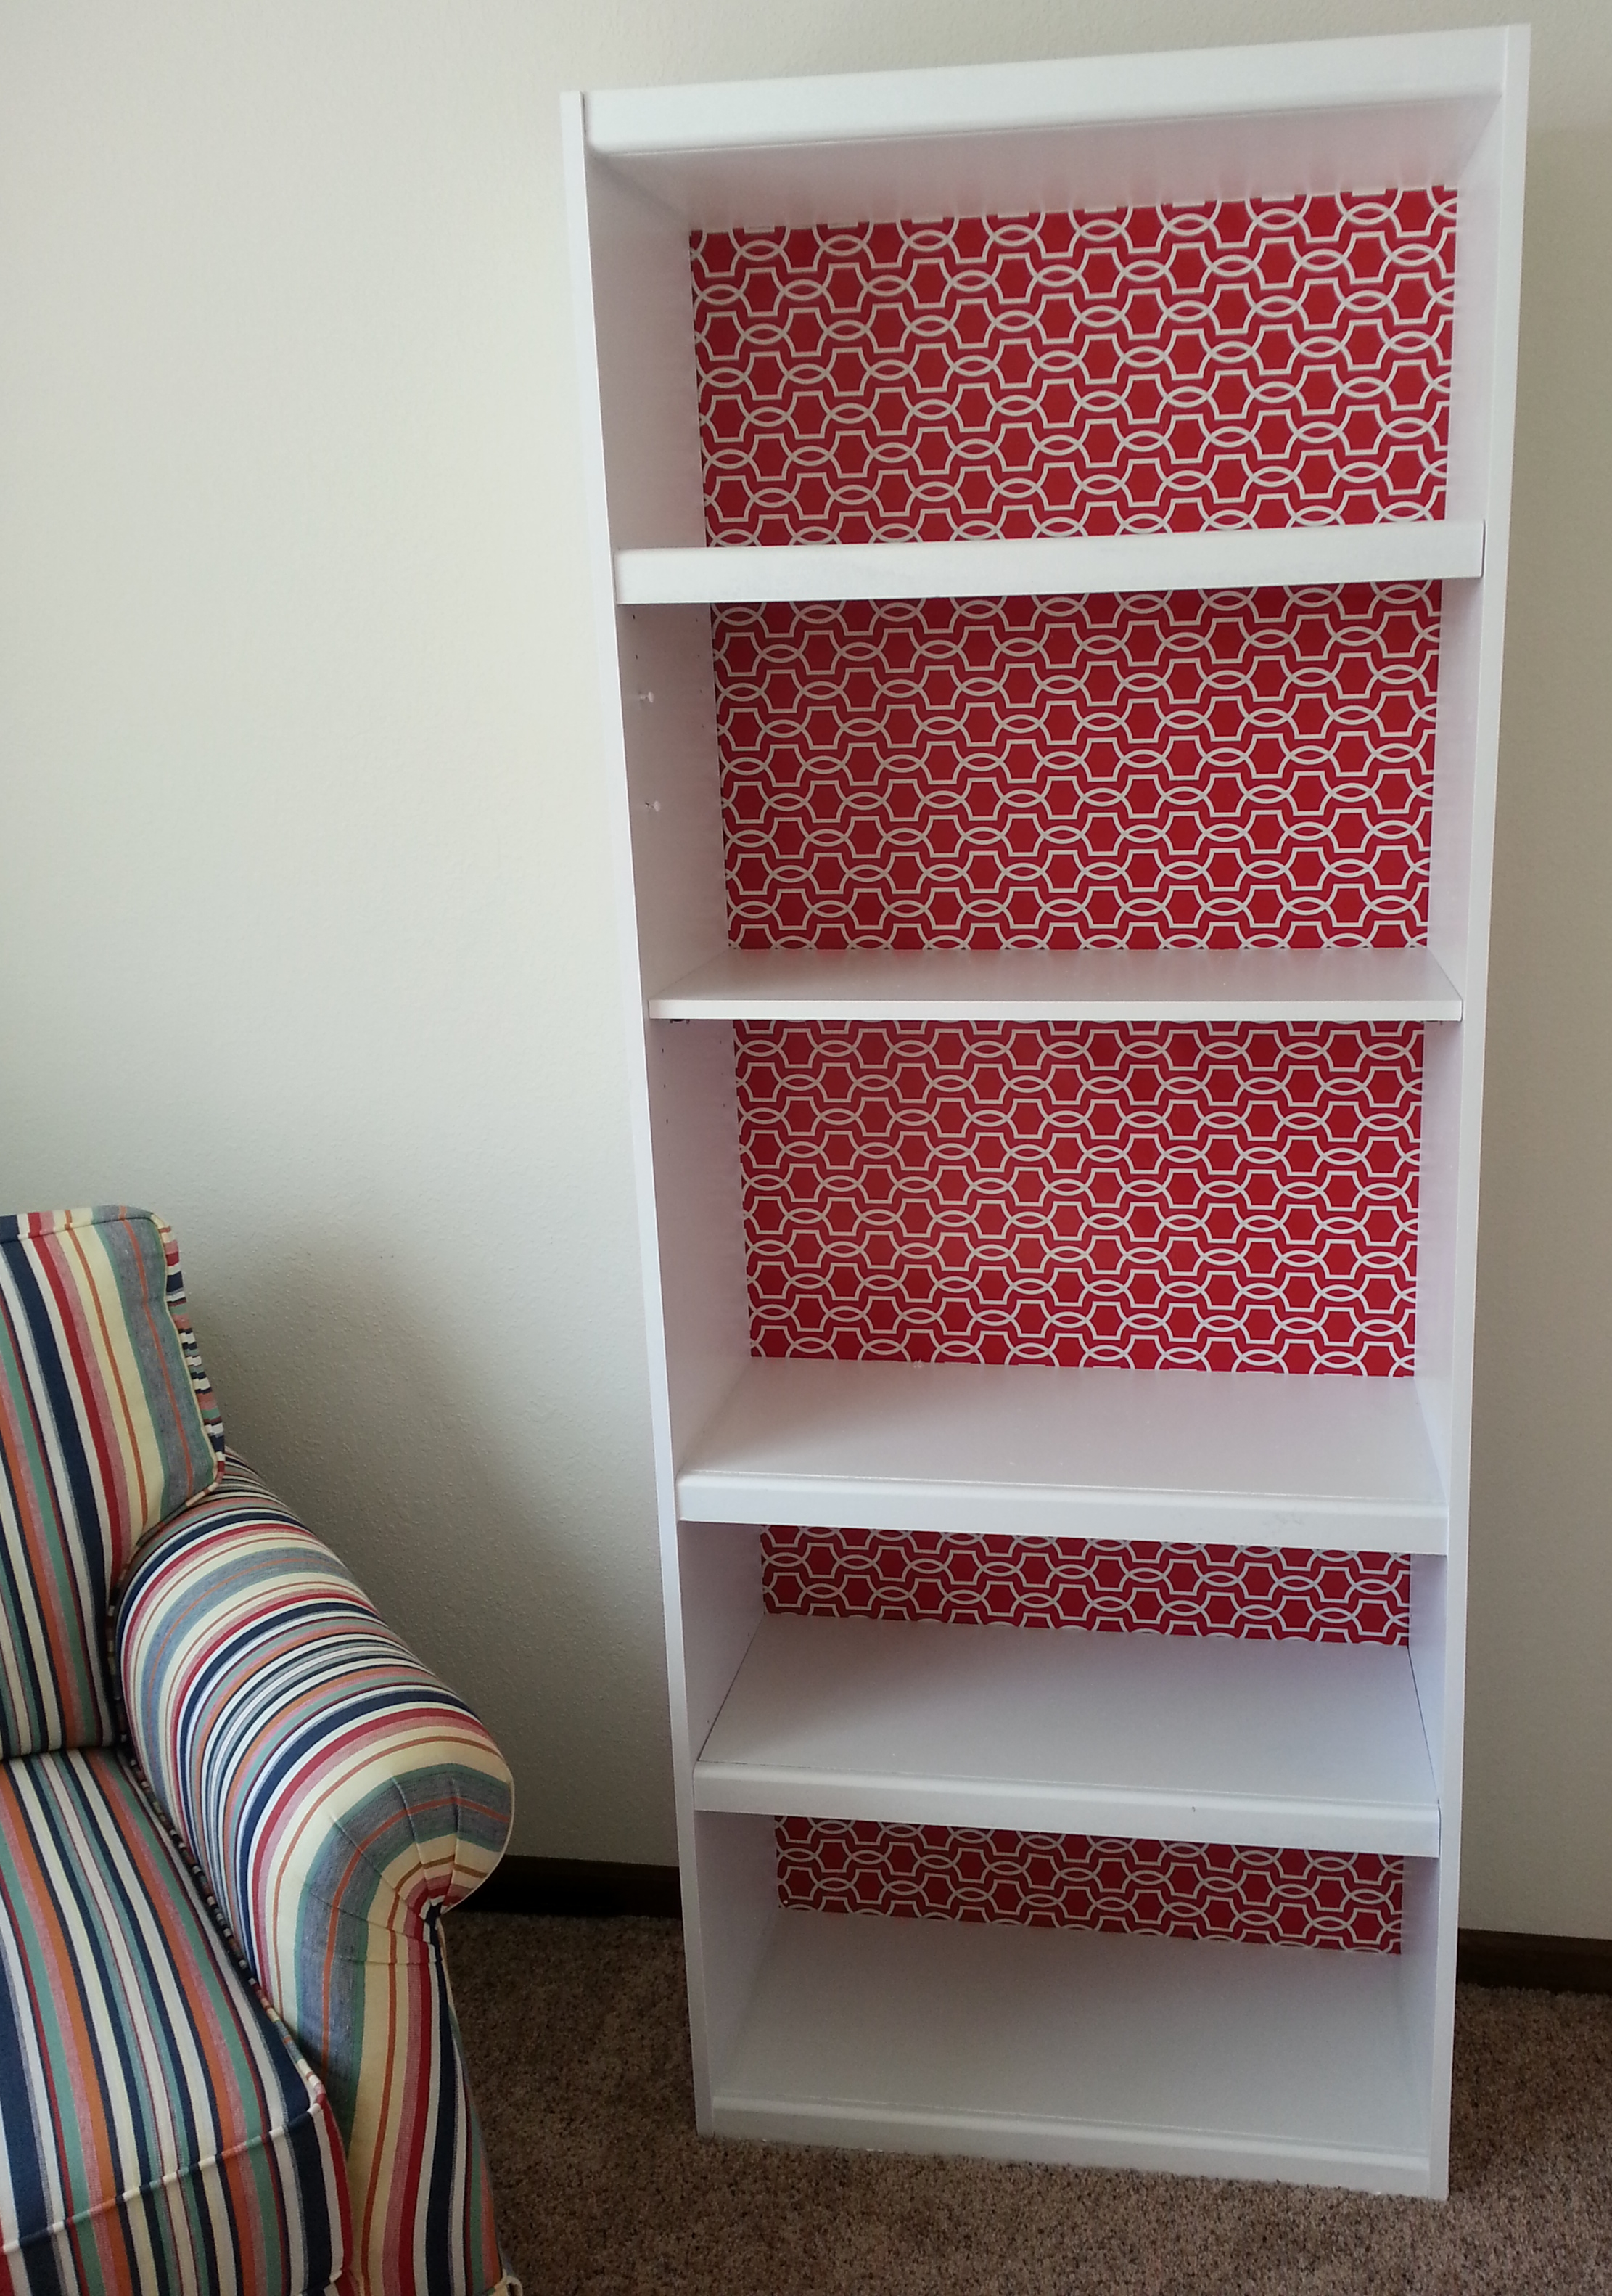 Incroyable How To Paint Laminate Furniture   Finished Painted And Wrapped Bookcase